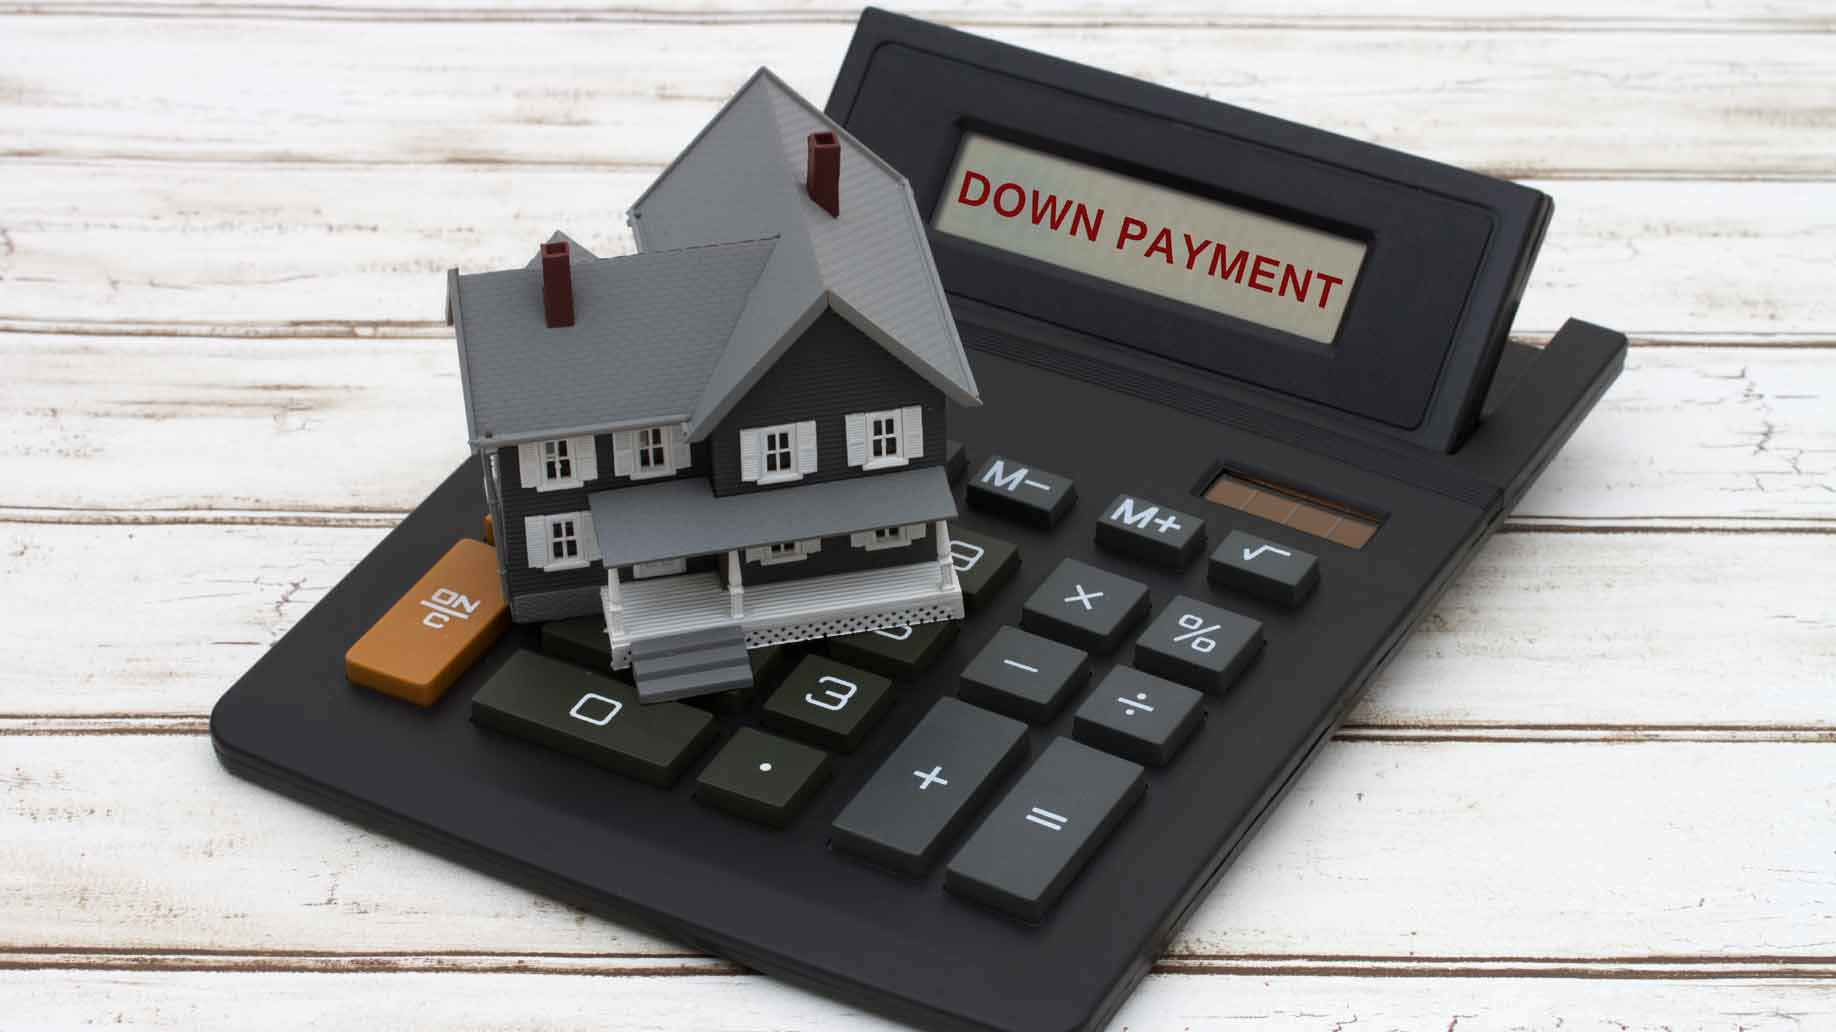 making a down payment on a house